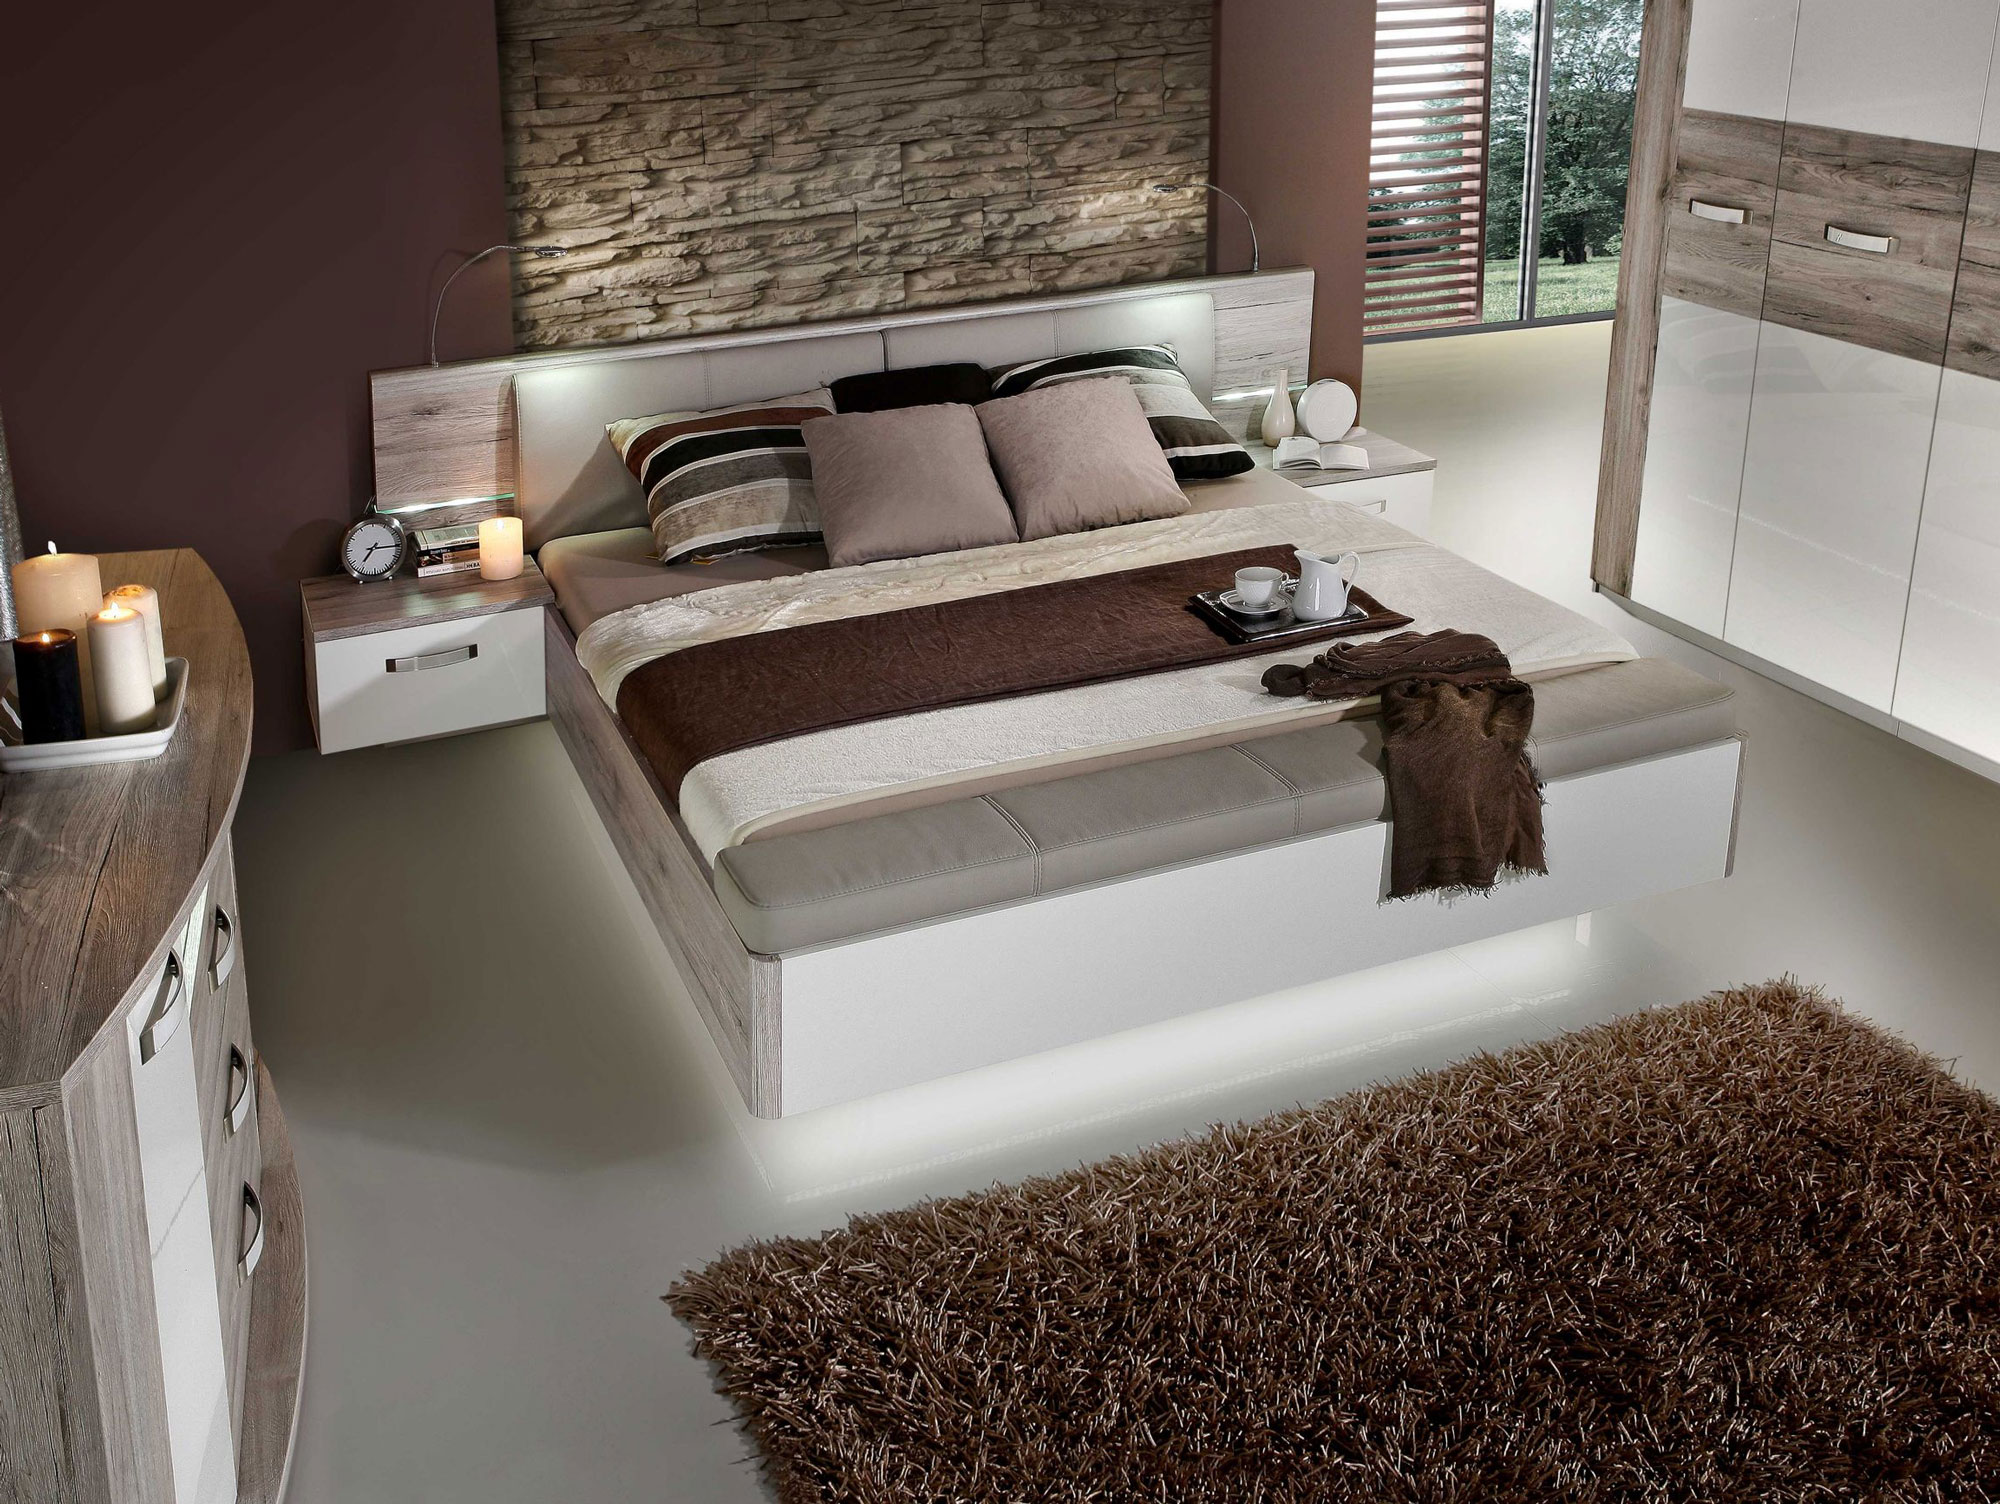 romana bettanlage 180x200 cm sandeiche weiss mit bettbank. Black Bedroom Furniture Sets. Home Design Ideas